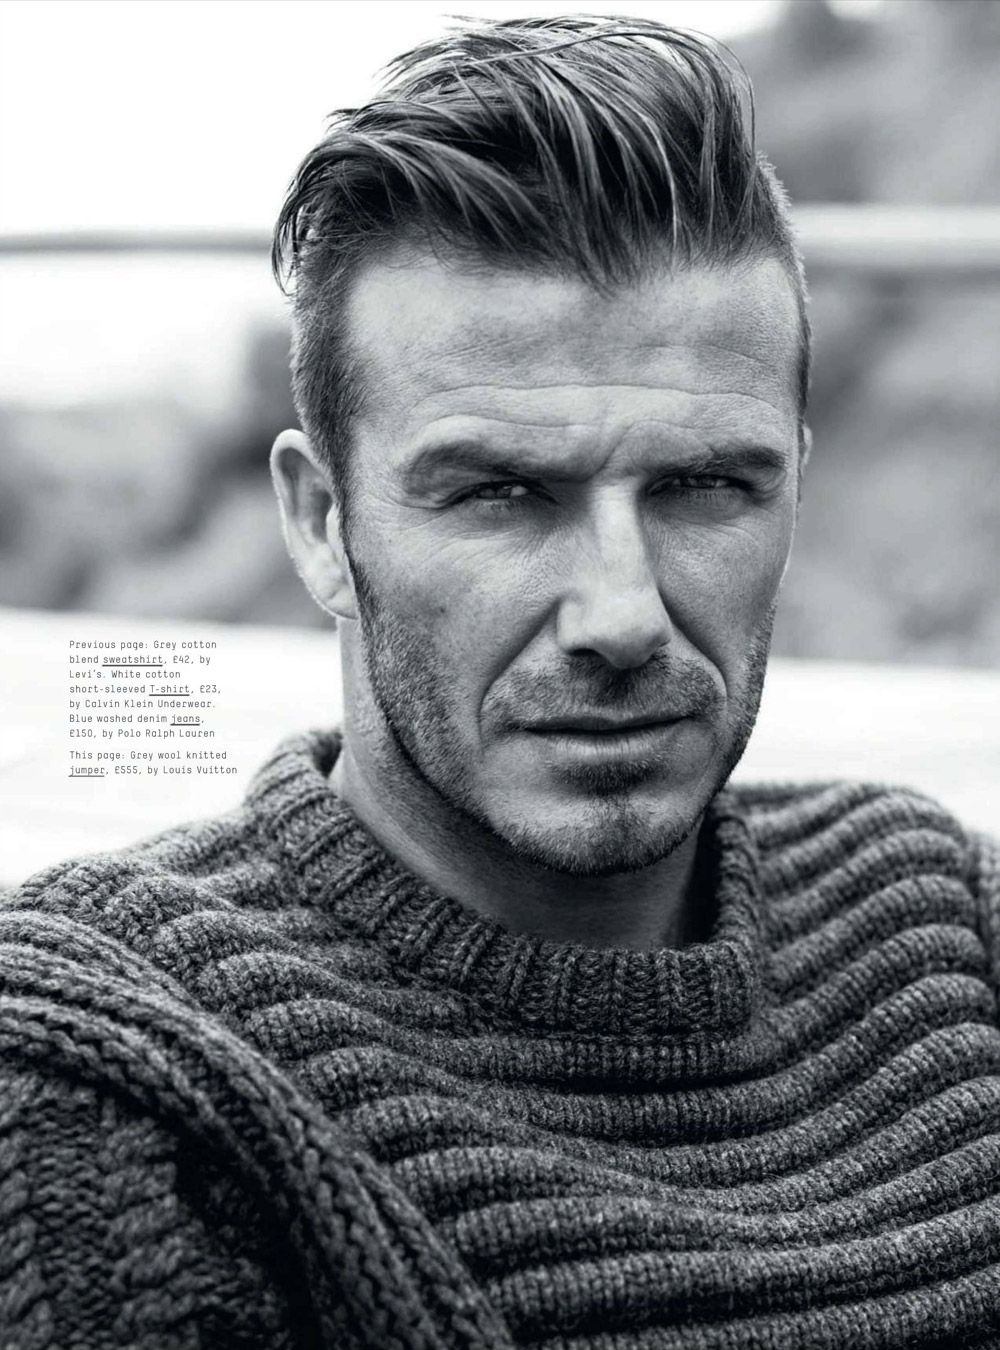 david-beckham-esquire-uk-september-2012-03.jpg